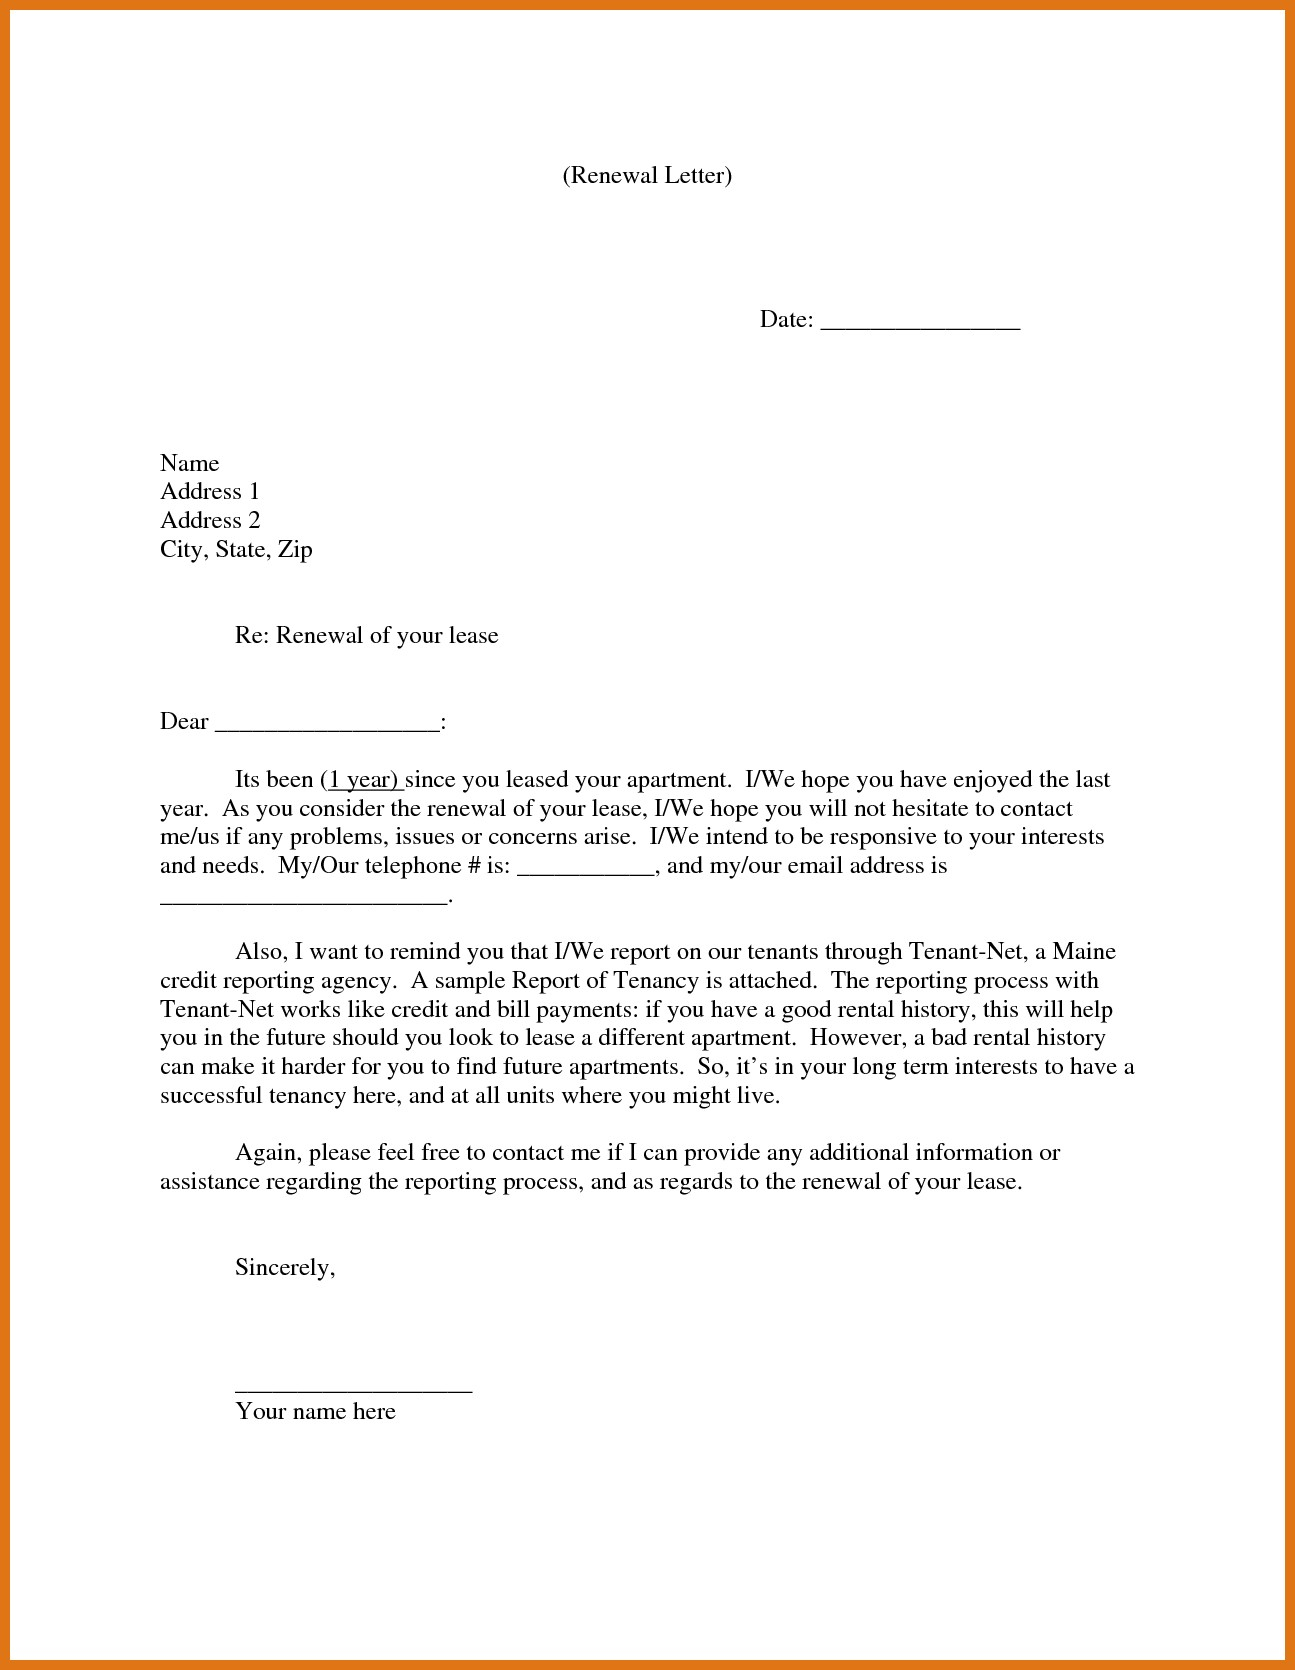 Landlord Agreement Letter Template Examples Letter Templates